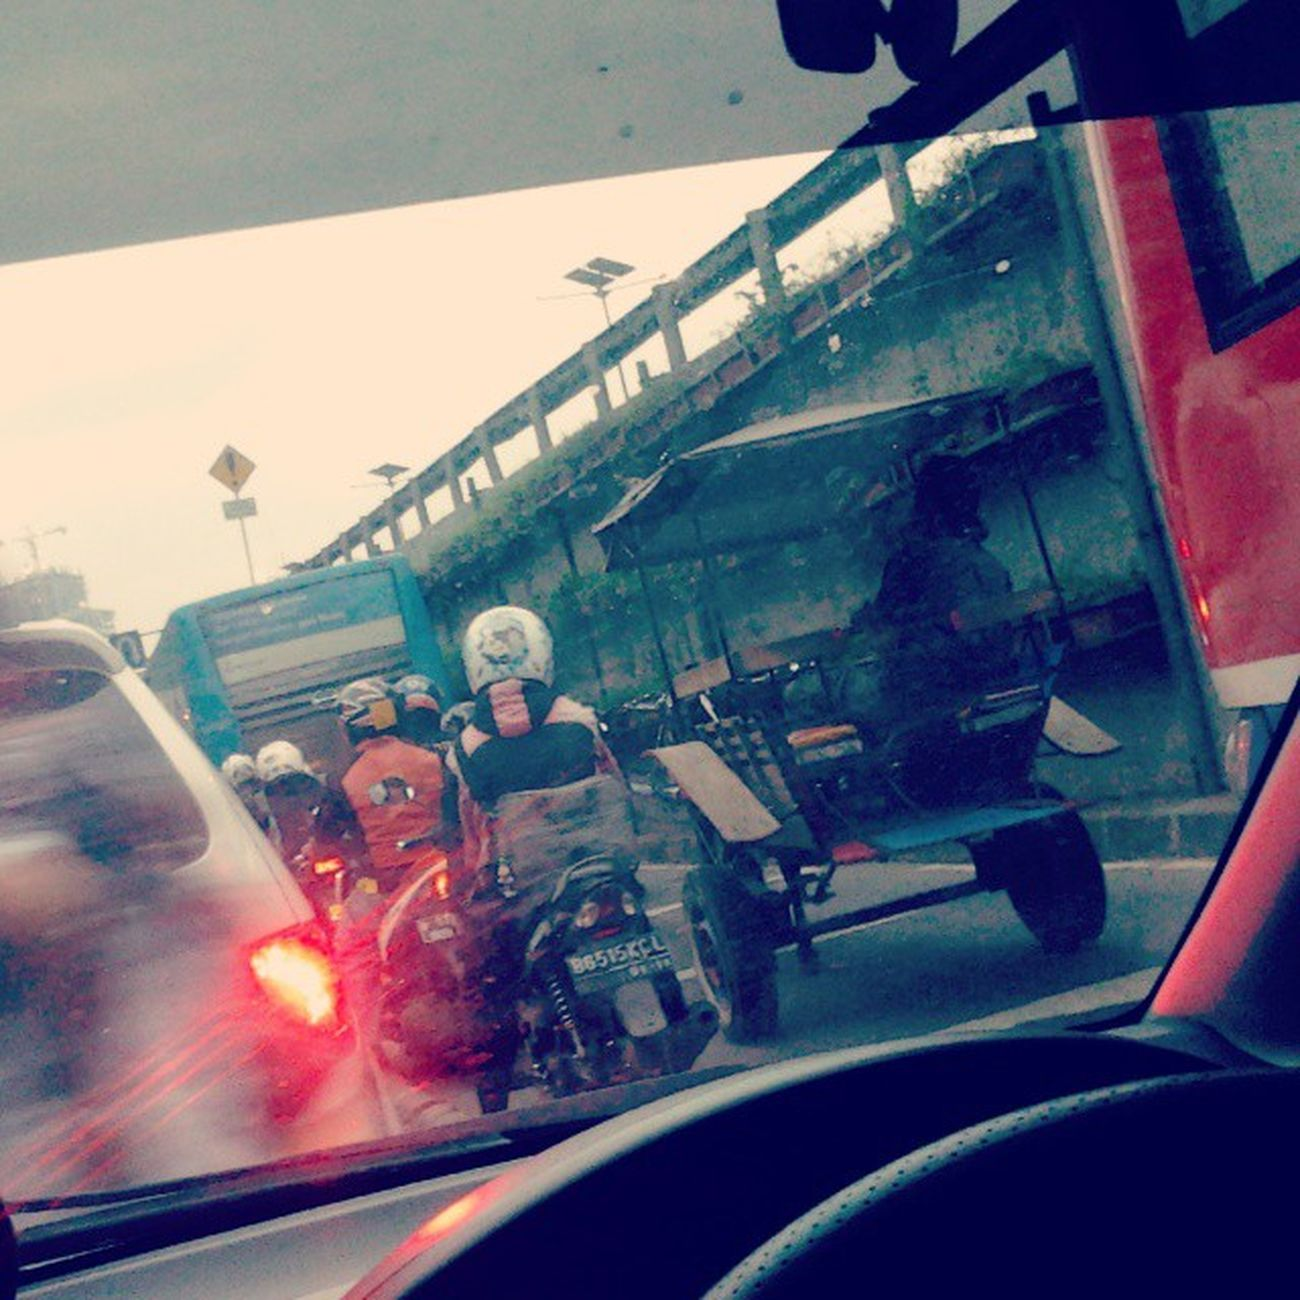 Rare moment, when The two-wheeled carriage by horse (also called : andong, sado or delman) trapped on the traffic jam being with common vehicles. Andong Delman Sado Traditional Vehicle public Transportation Trapped traffic dki jkt jakarta indonesia thursday afternoon november 2014 Ancient unique Vintage Road